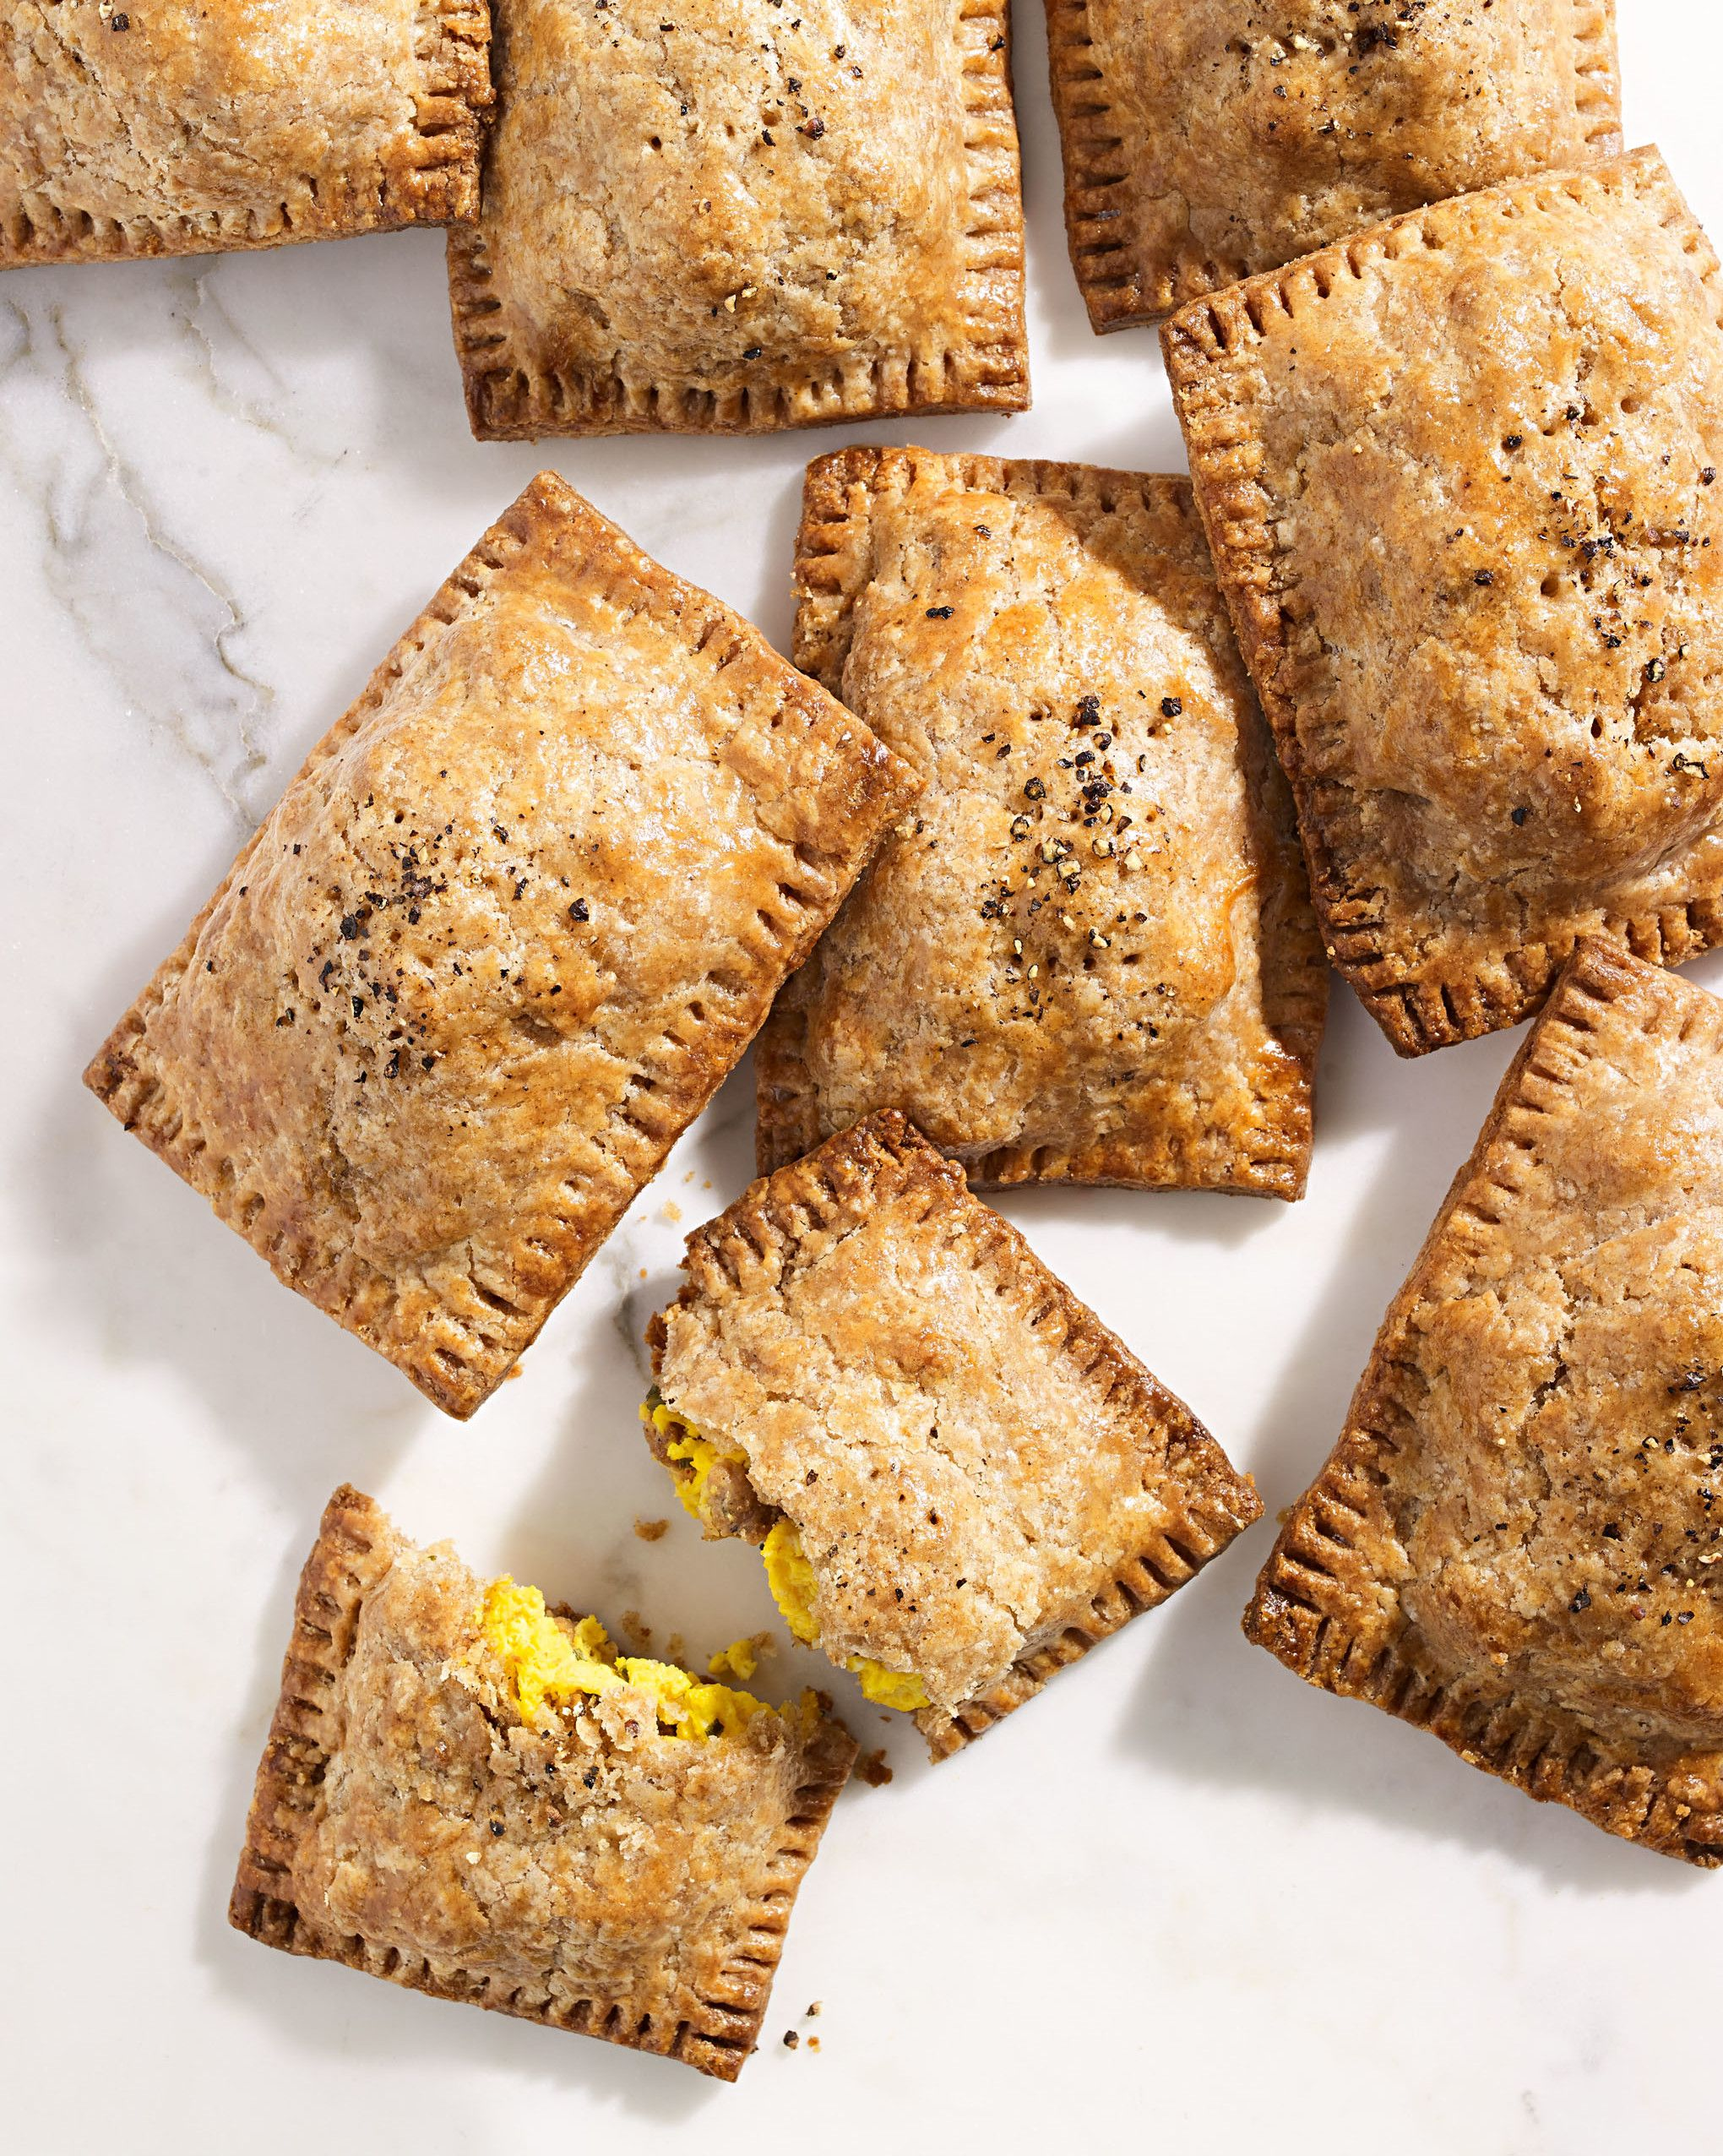 Our Savory Pop Tarts Will Win Over Any Brunch Crowd